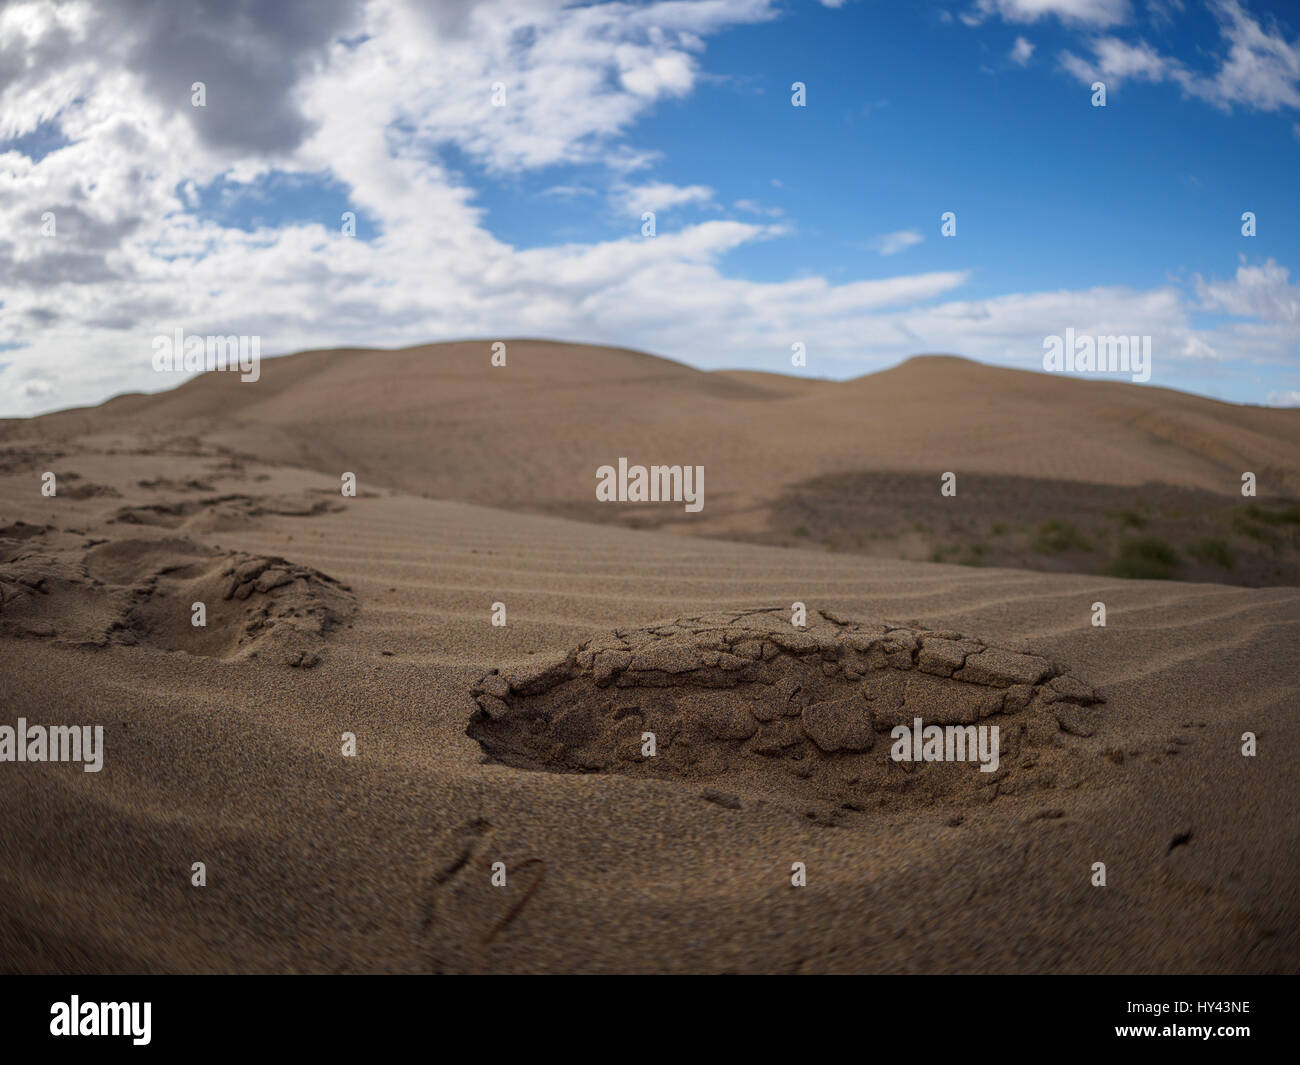 Scenic View Of Desert Against Blue Sky - Stock Image